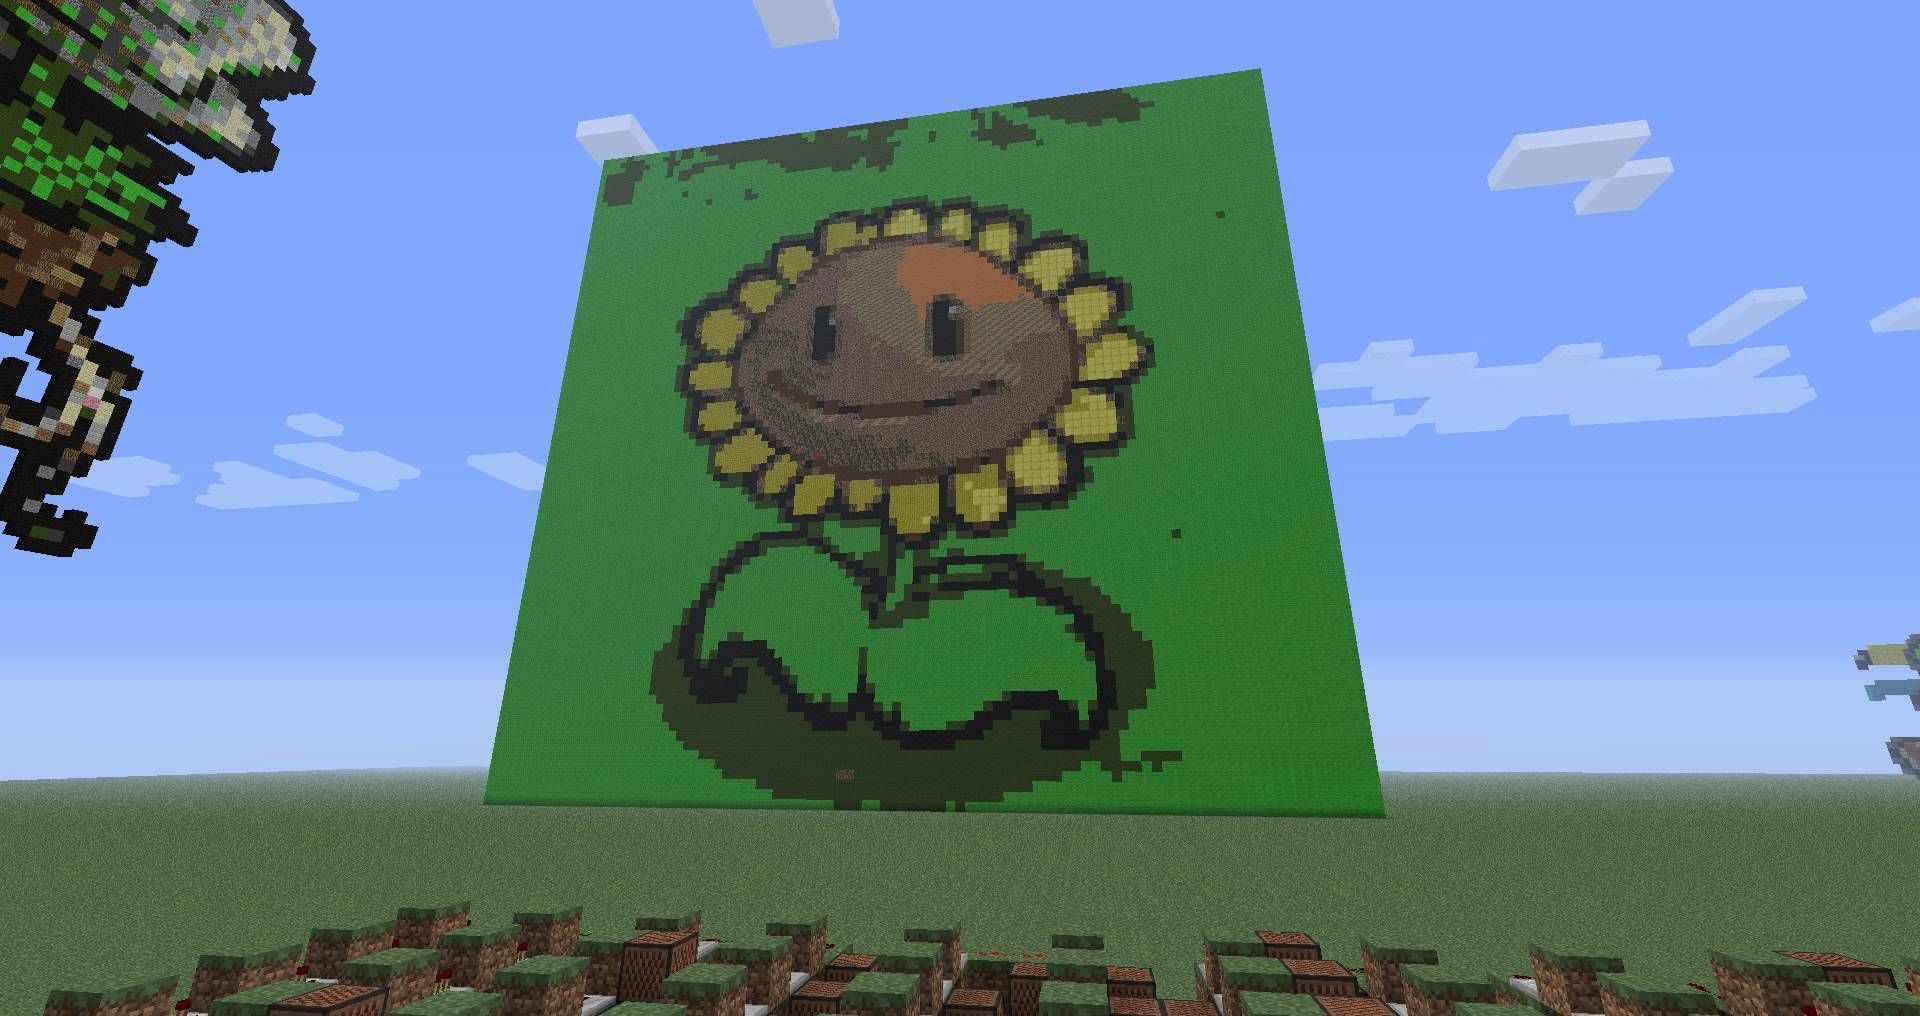 Plants Vs Zombies on Minecraft Note Blocks (Roof theme